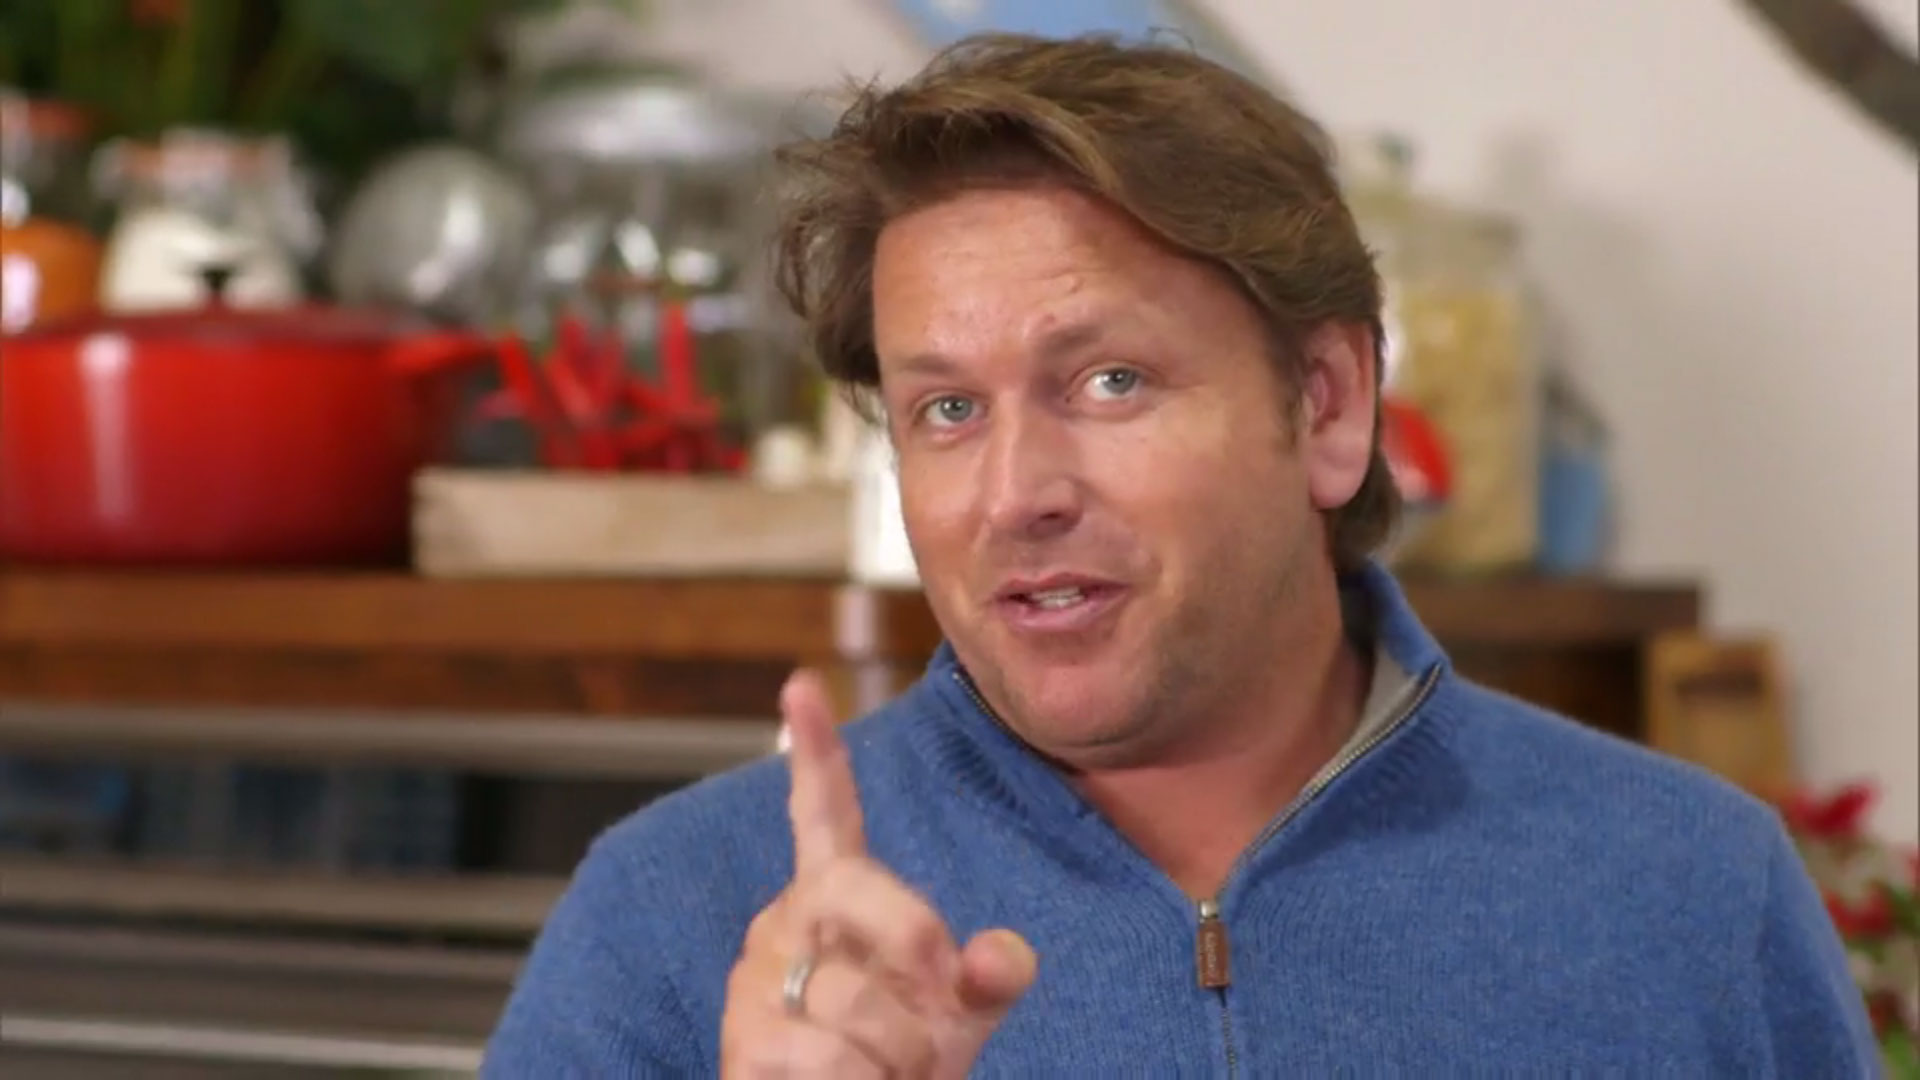 James Martin has already returned to Saturday Kitchen – to cook an omelette